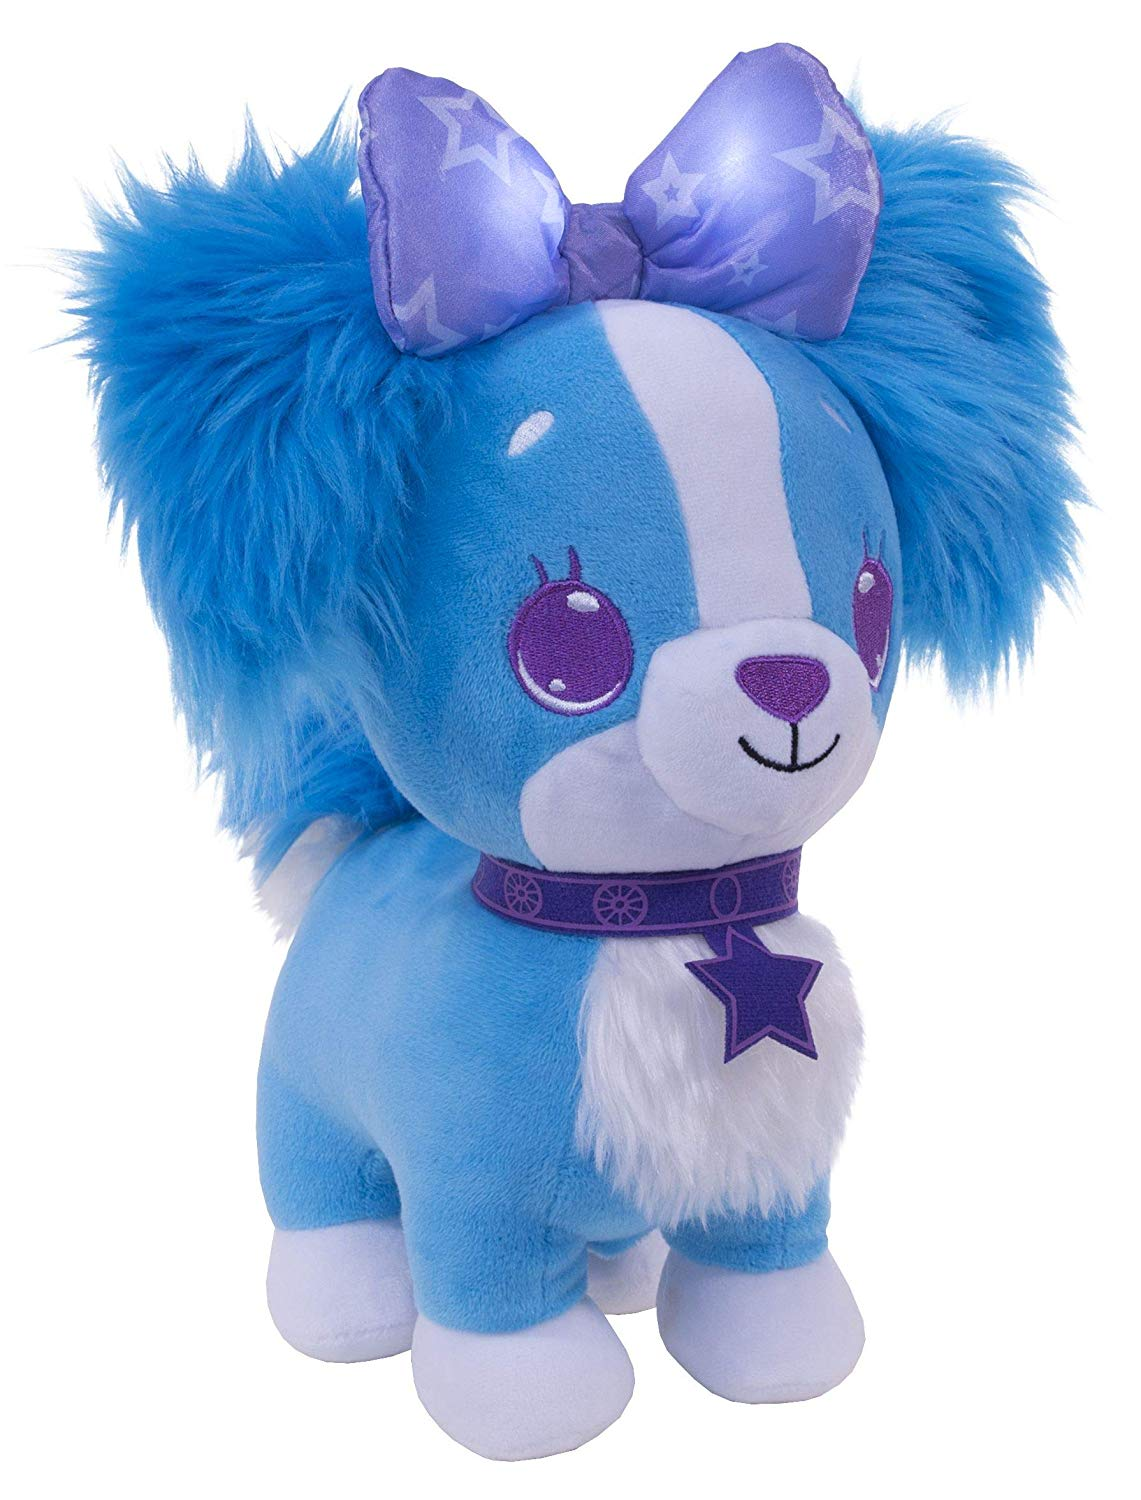 Say Hello to the magical Wish Me pets! the soft and sweet pets that let you wish upon a bow. Kiss their nose and their bow glows. Make a wish, blow a kiss and it's lights out and dreams away! Wish Me pets make sounds when you play with them.